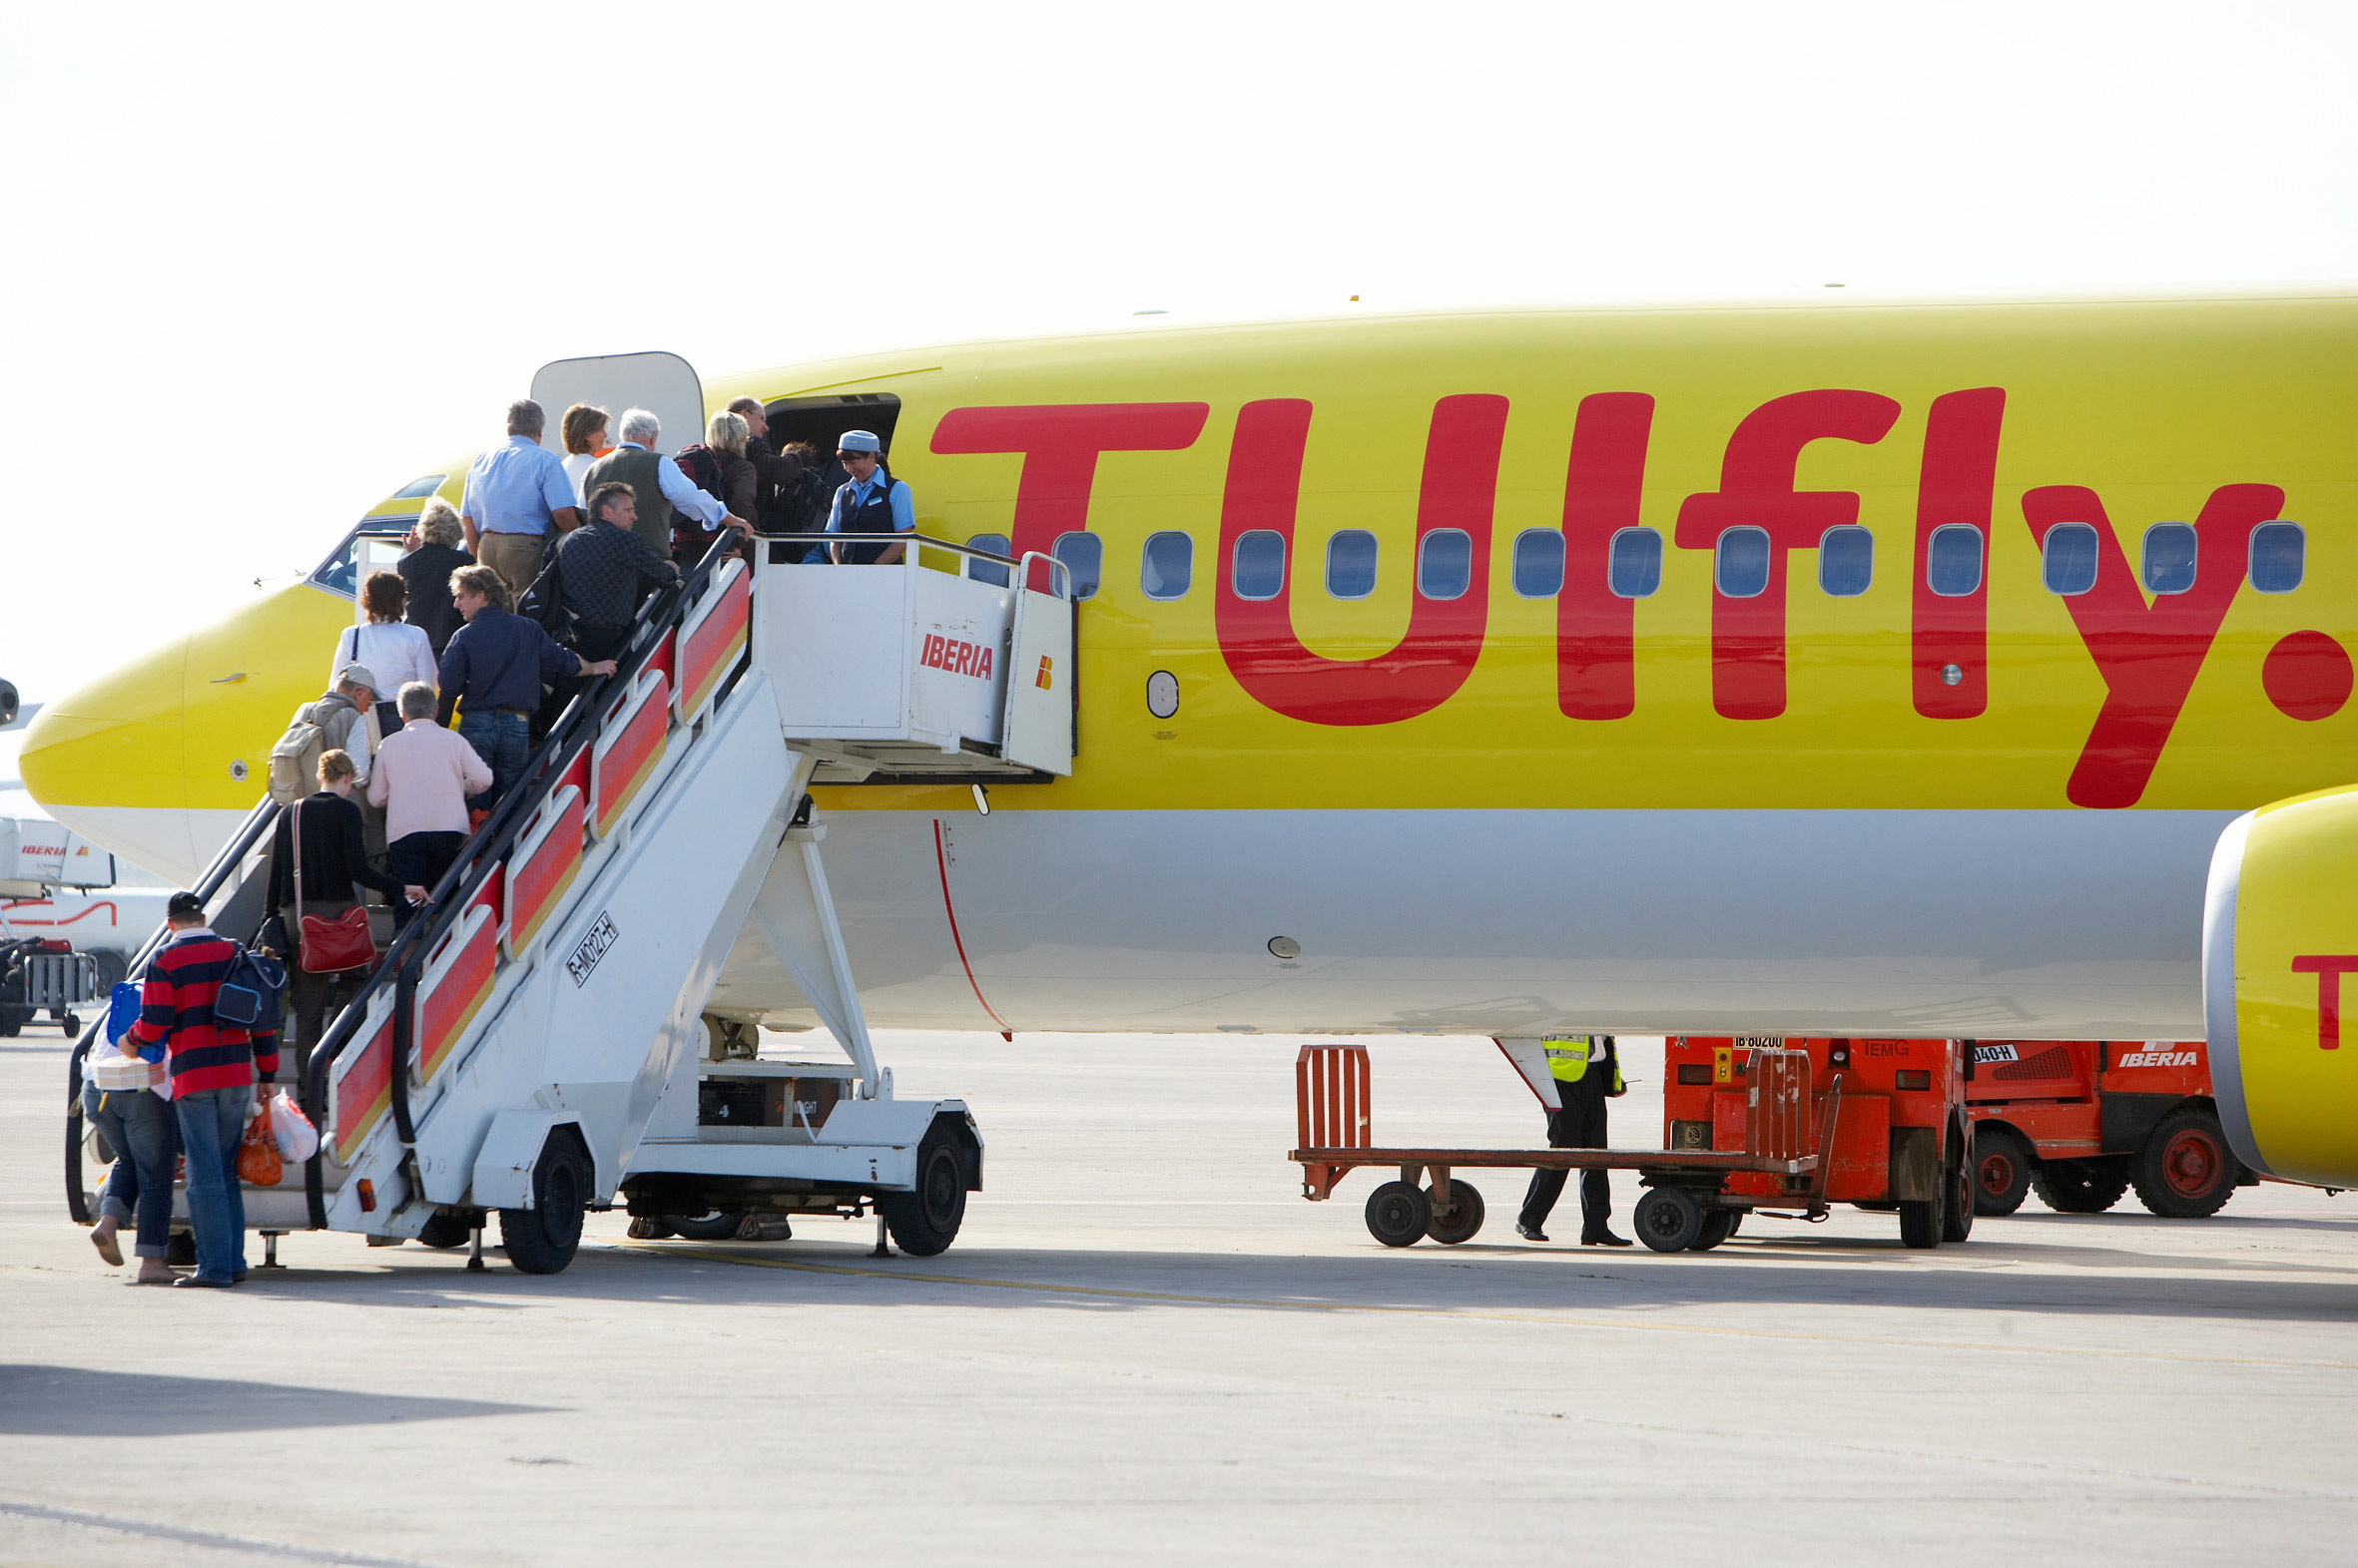 Airline TYUI Fly (TUI fly). Official sayt.3